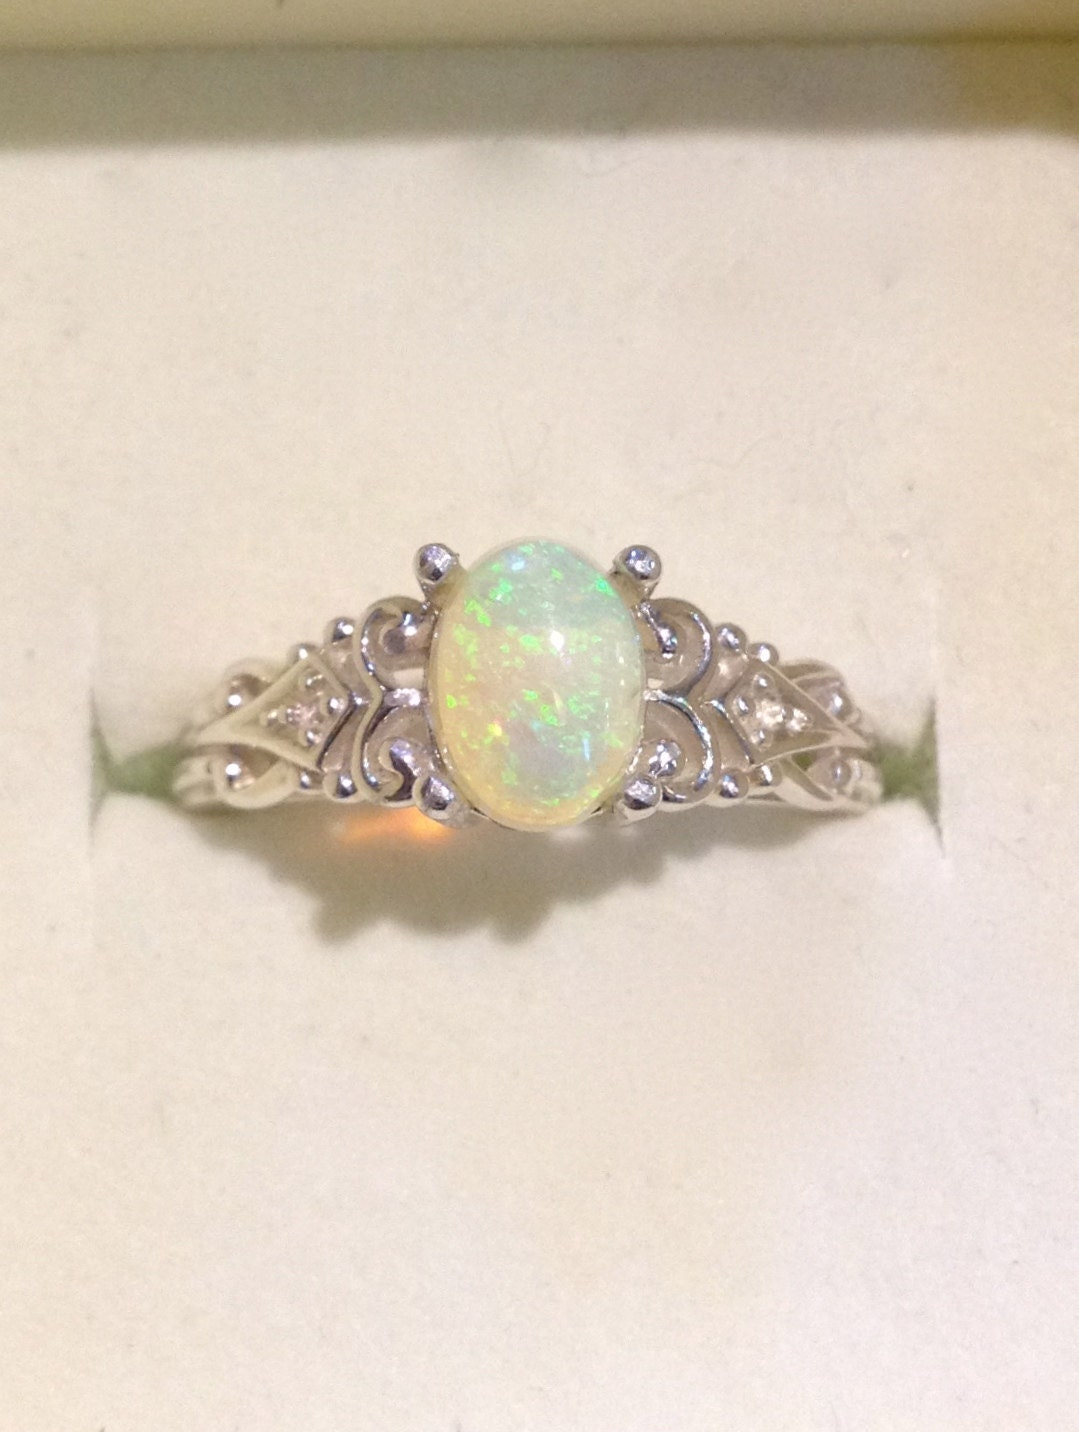 Australian Opal Ring Vintage Style Opal Ring with Diamonds